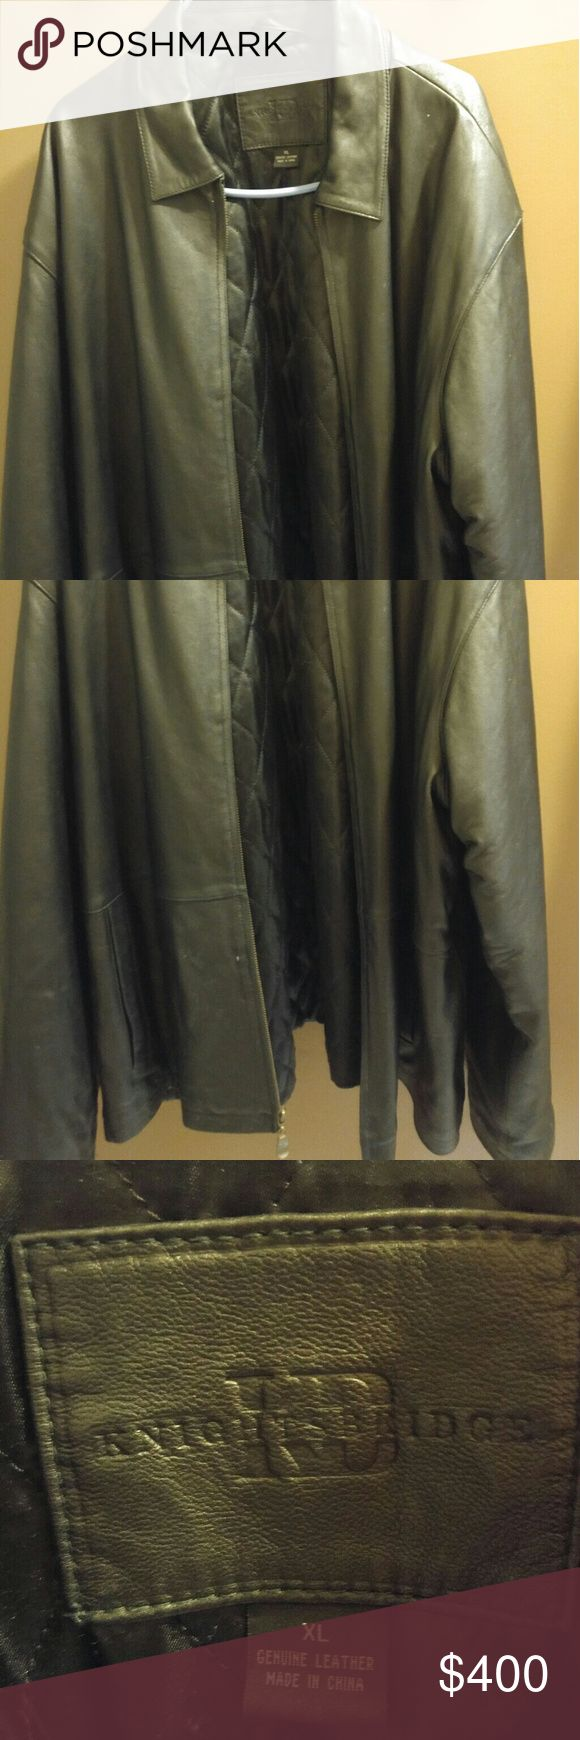 Men's Xlarge leather jacket SALE Gently used Xlarge Genuine leather jacket Lined inside with warm cushion polyester fabric. Several pockets hidden  Zip closure Open to offers KnightsBridge Jackets & Coats